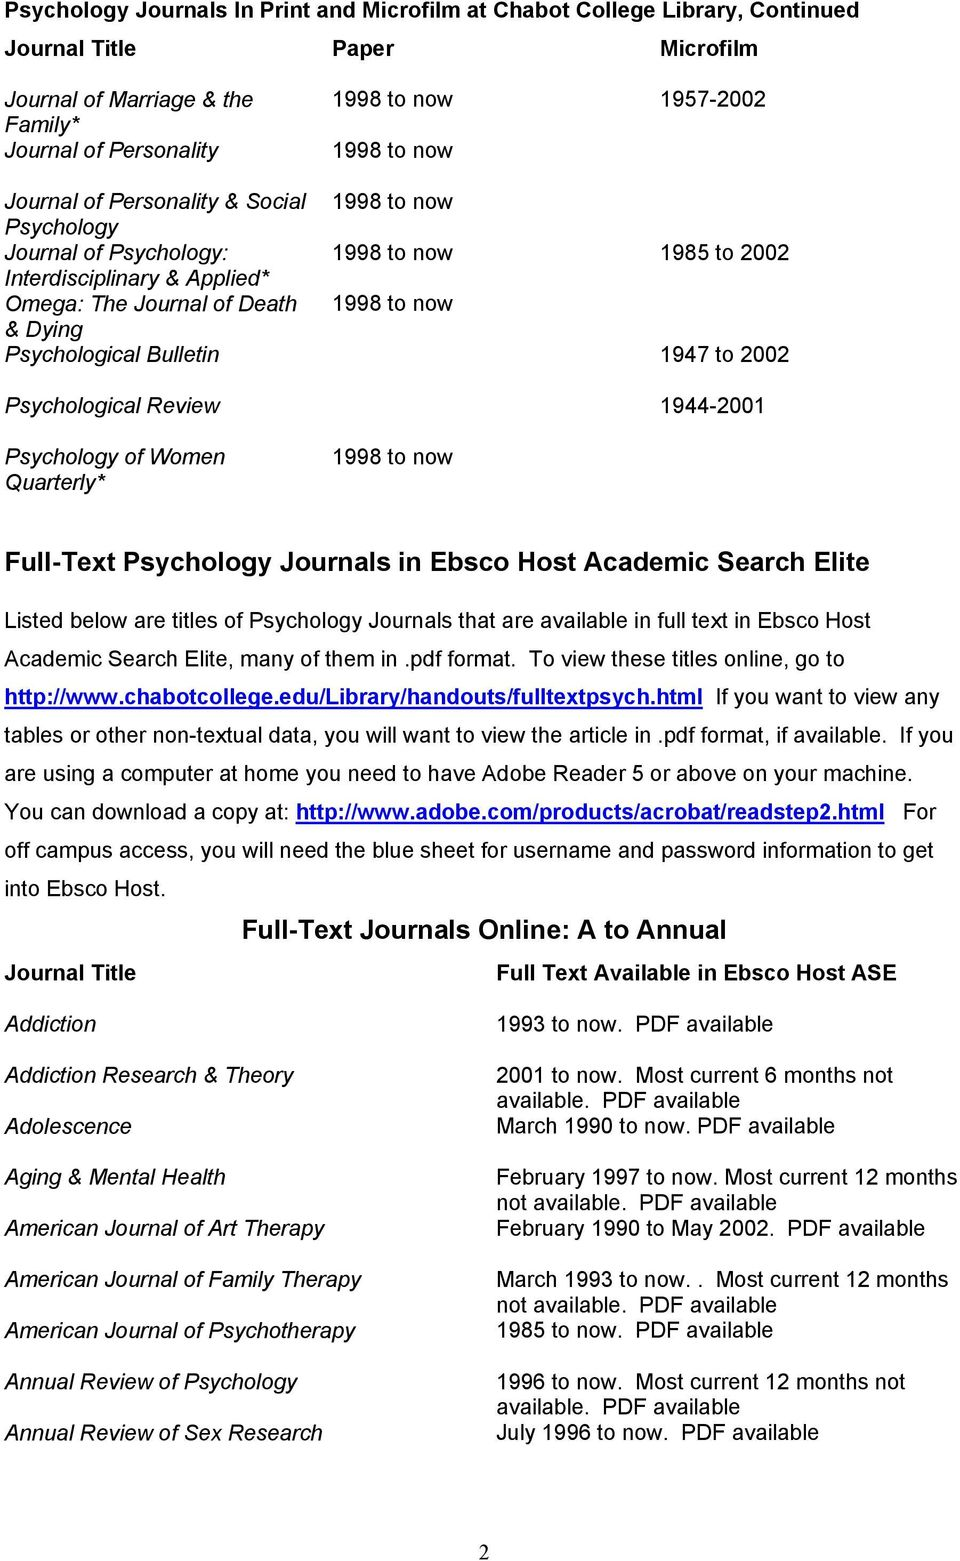 Academic Search Elite Listed below are titles of Journals that are available in full text in Ebsco Host Academic Search Elite, many of them in.pdf format.